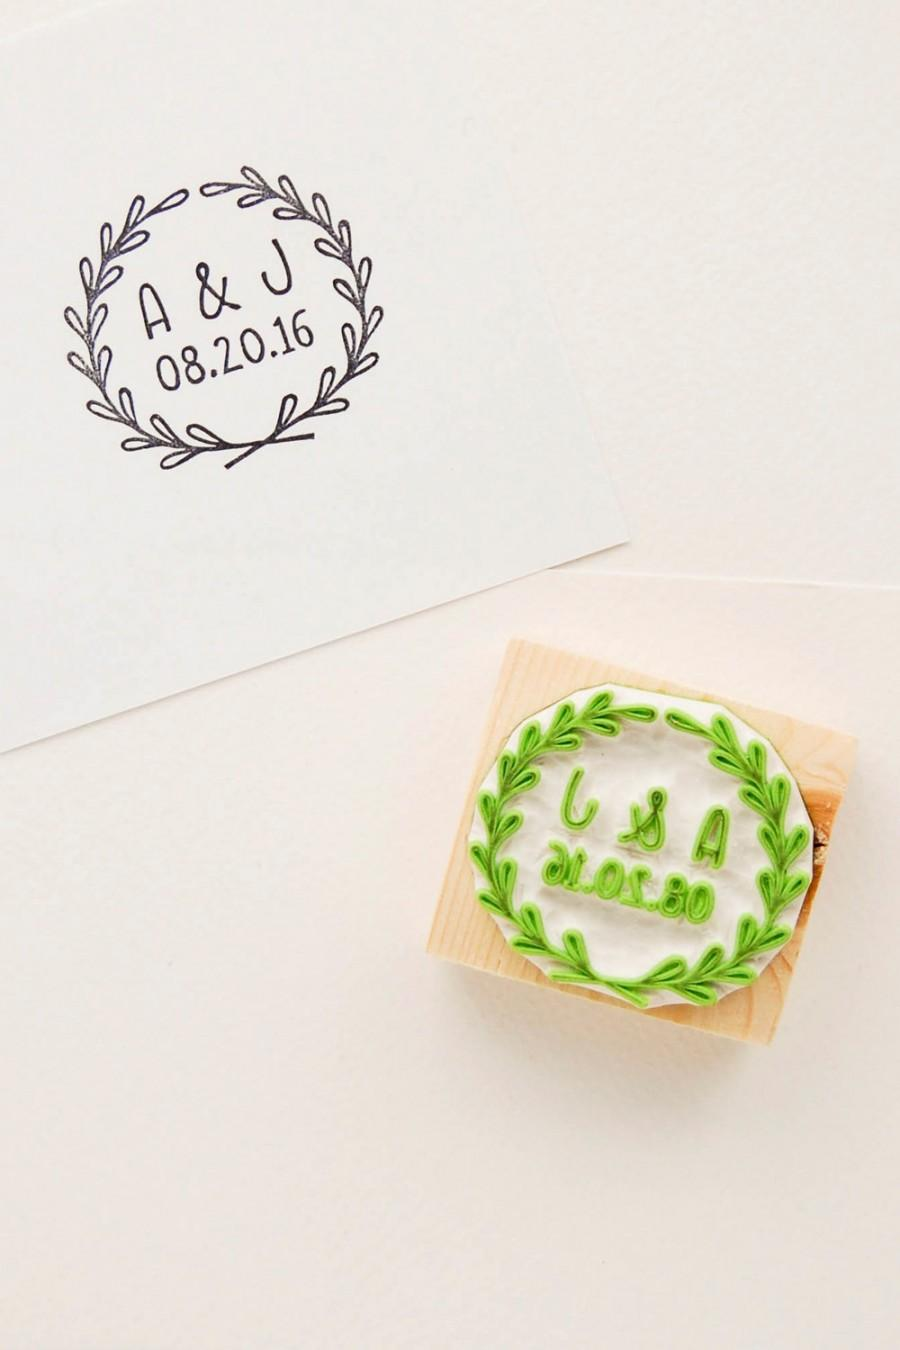 Wedding - Wedding rubber stamp, name initials stamp, custom rubber stamp, wedding wreath stamp, save the dates, date initials stamp